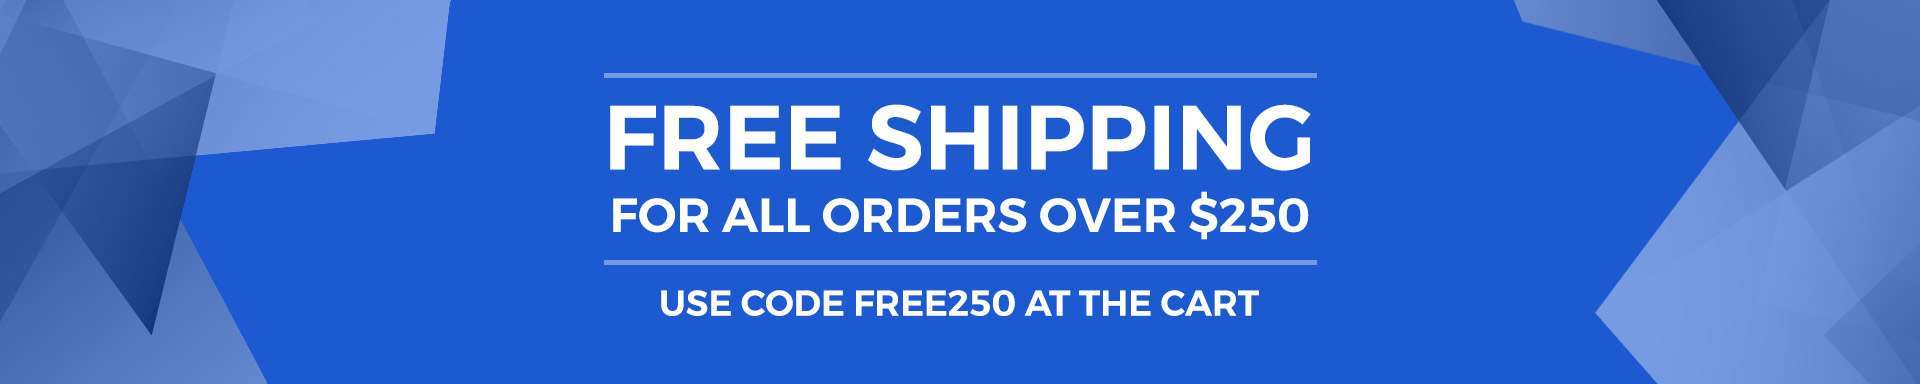 free shipping for all orders over $250